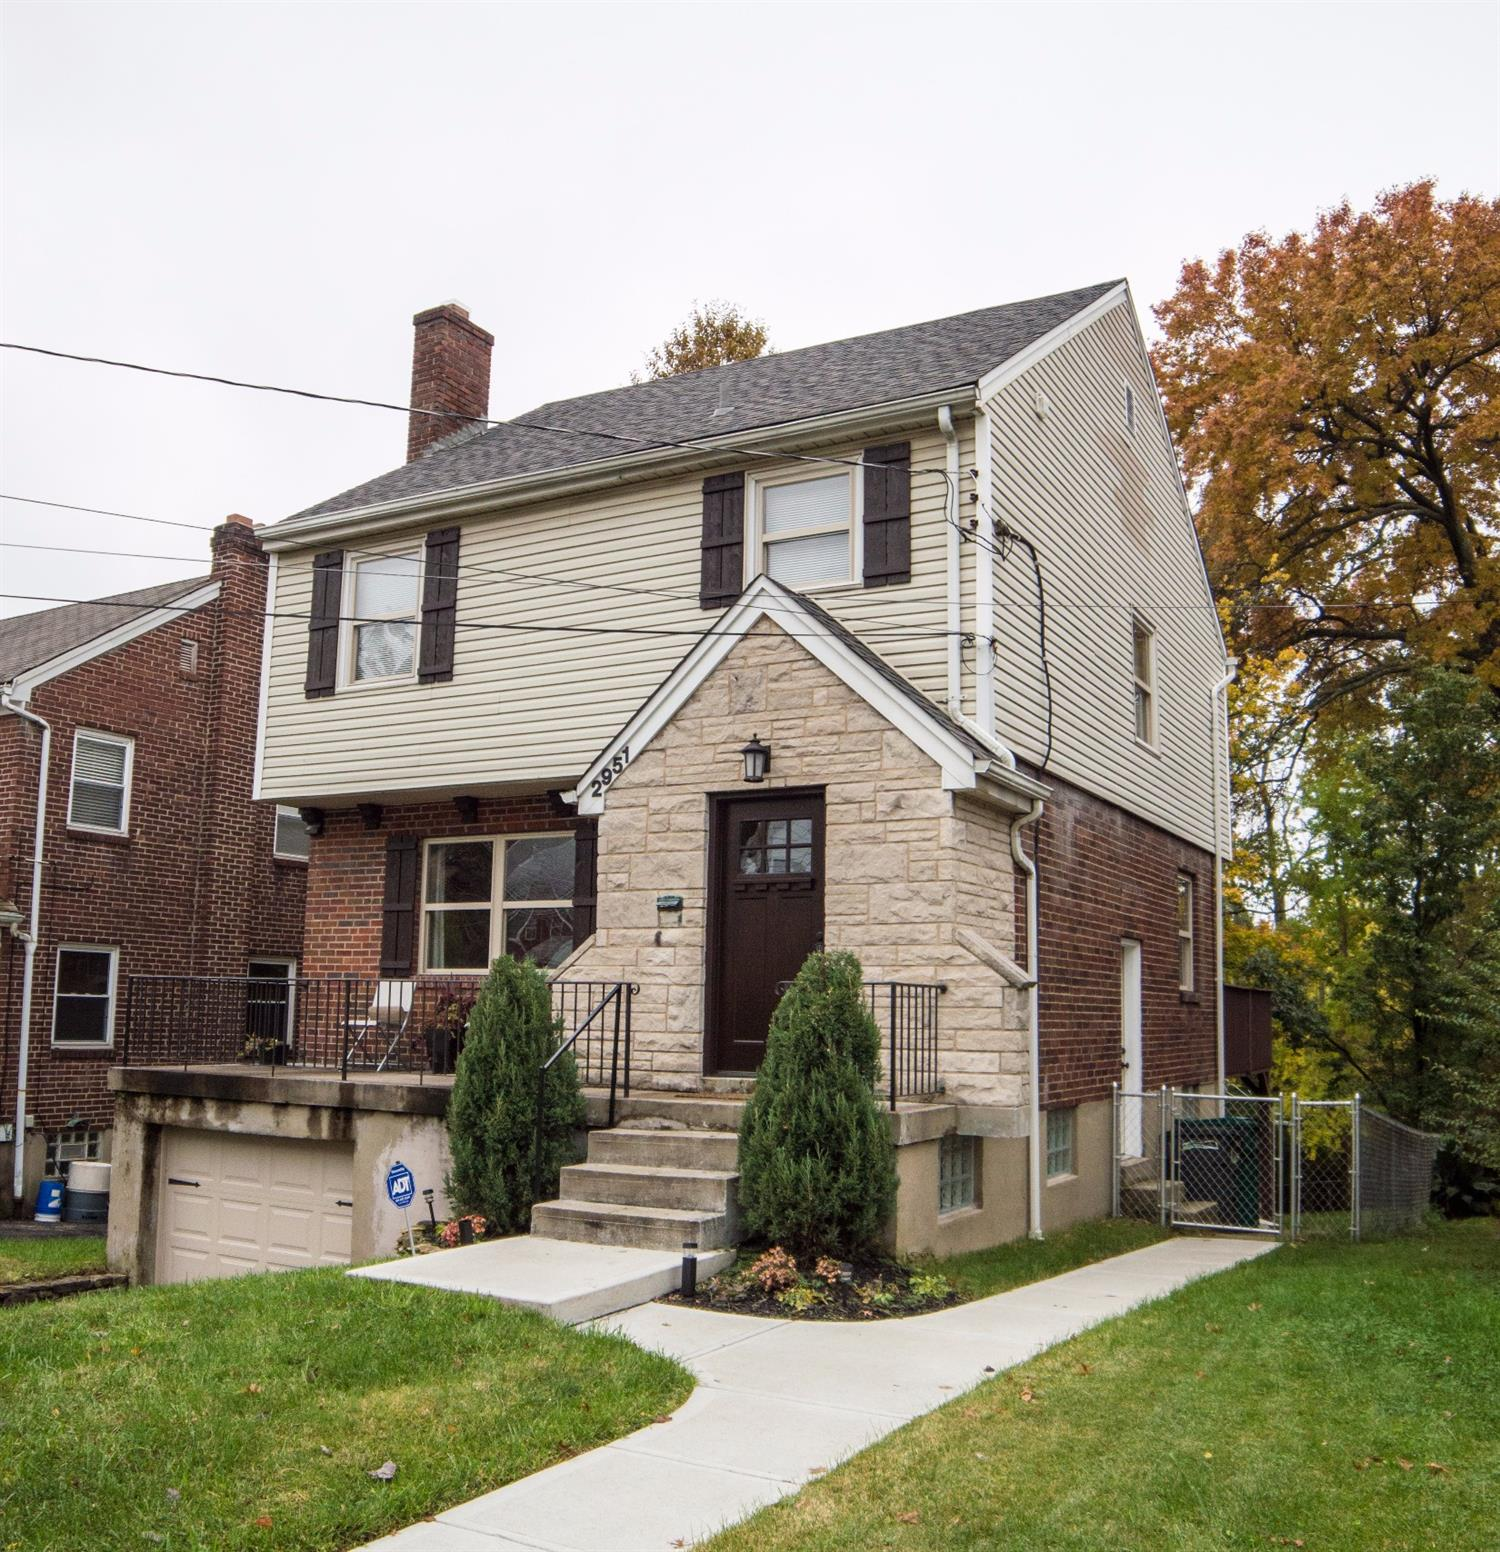 2951 Mapleleaf Ave Pleasant Ridge, OH